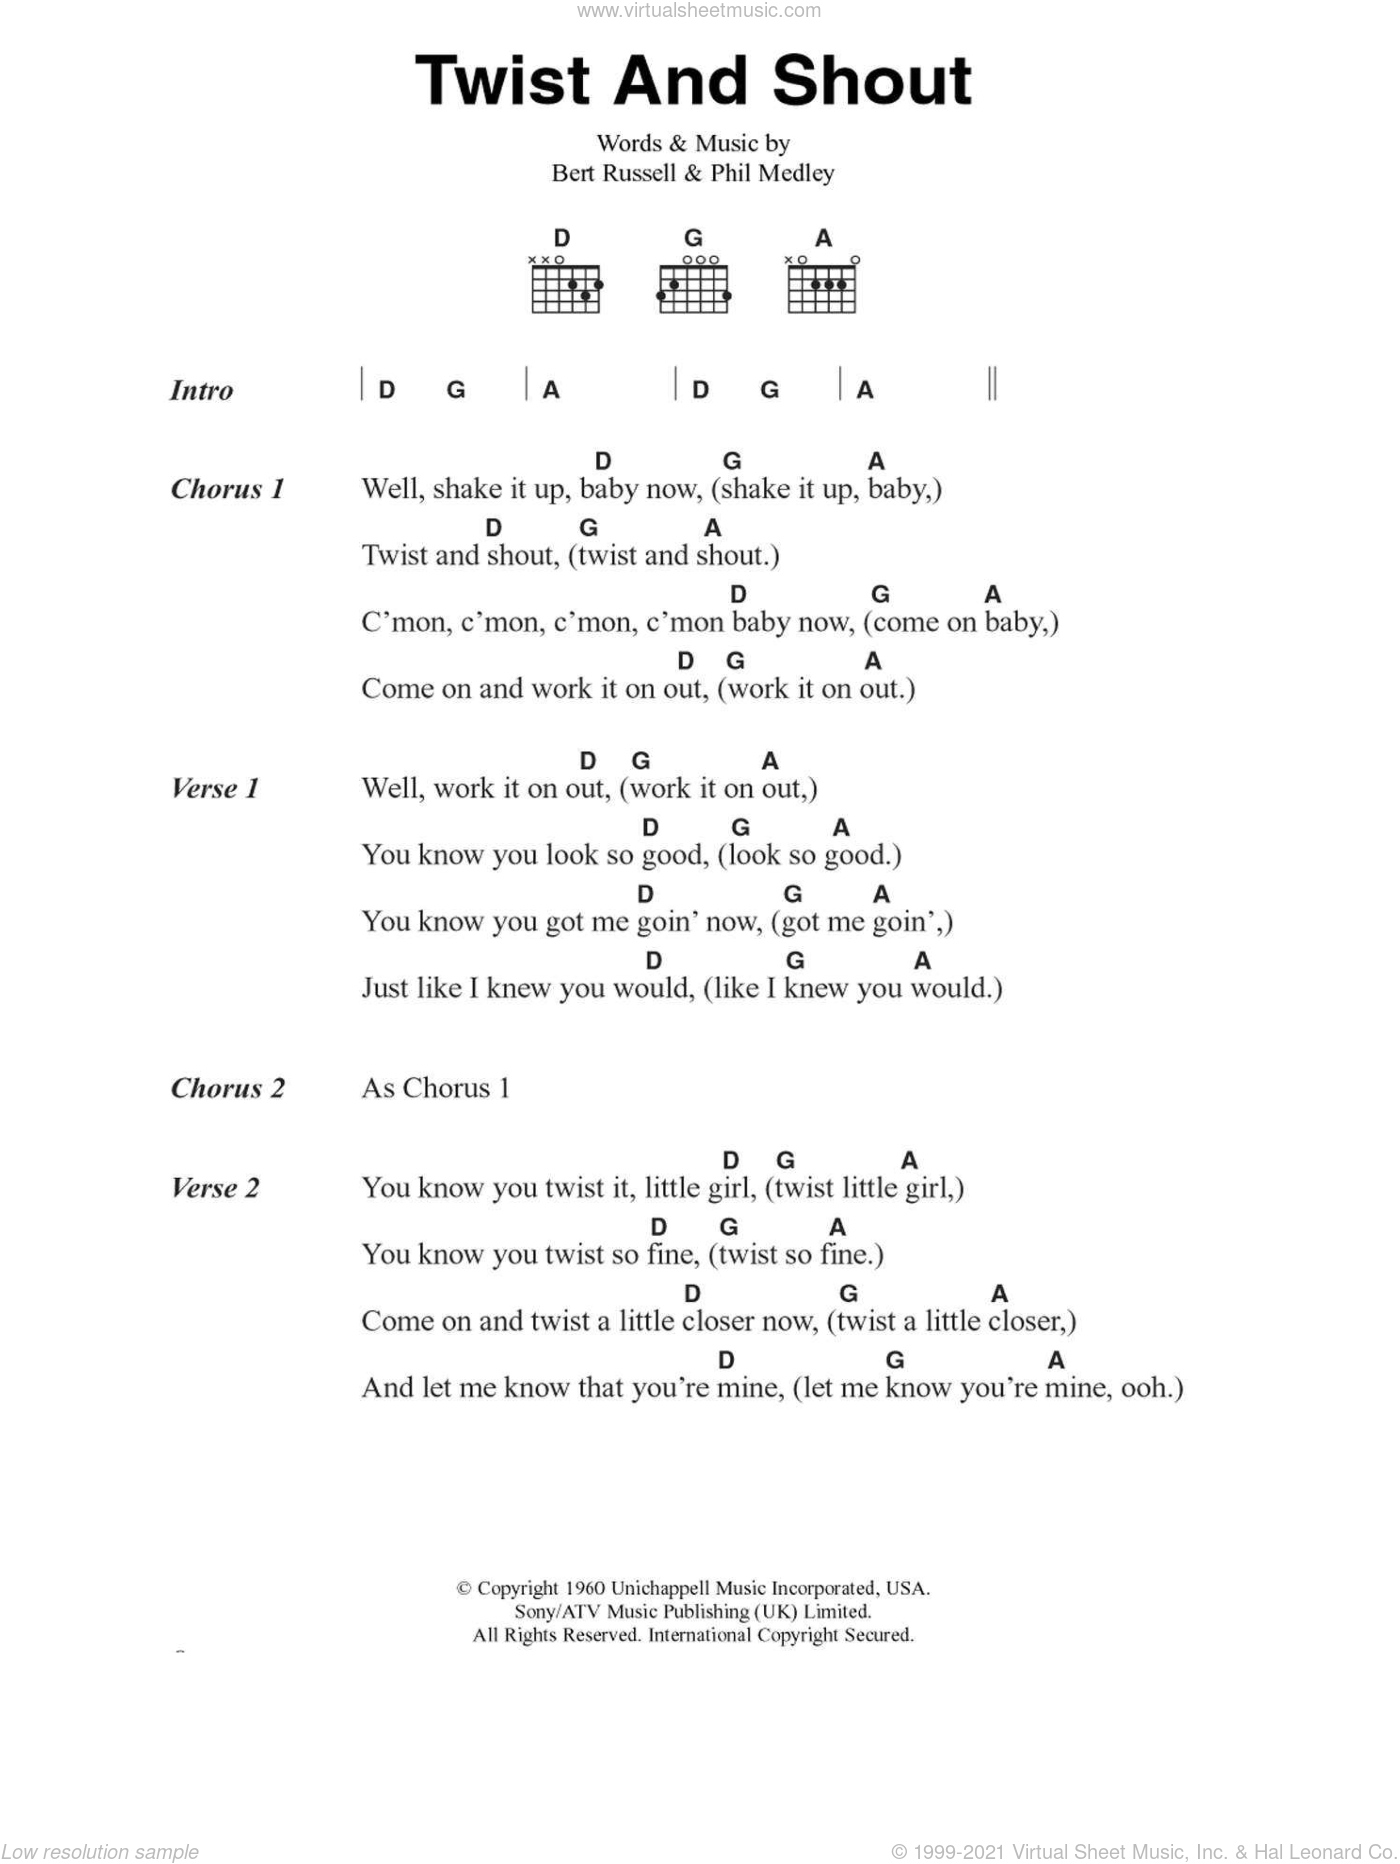 Twist And Shout sheet music for guitar (chords) by The Beatles, Bert Russell and Phil Medley, intermediate skill level